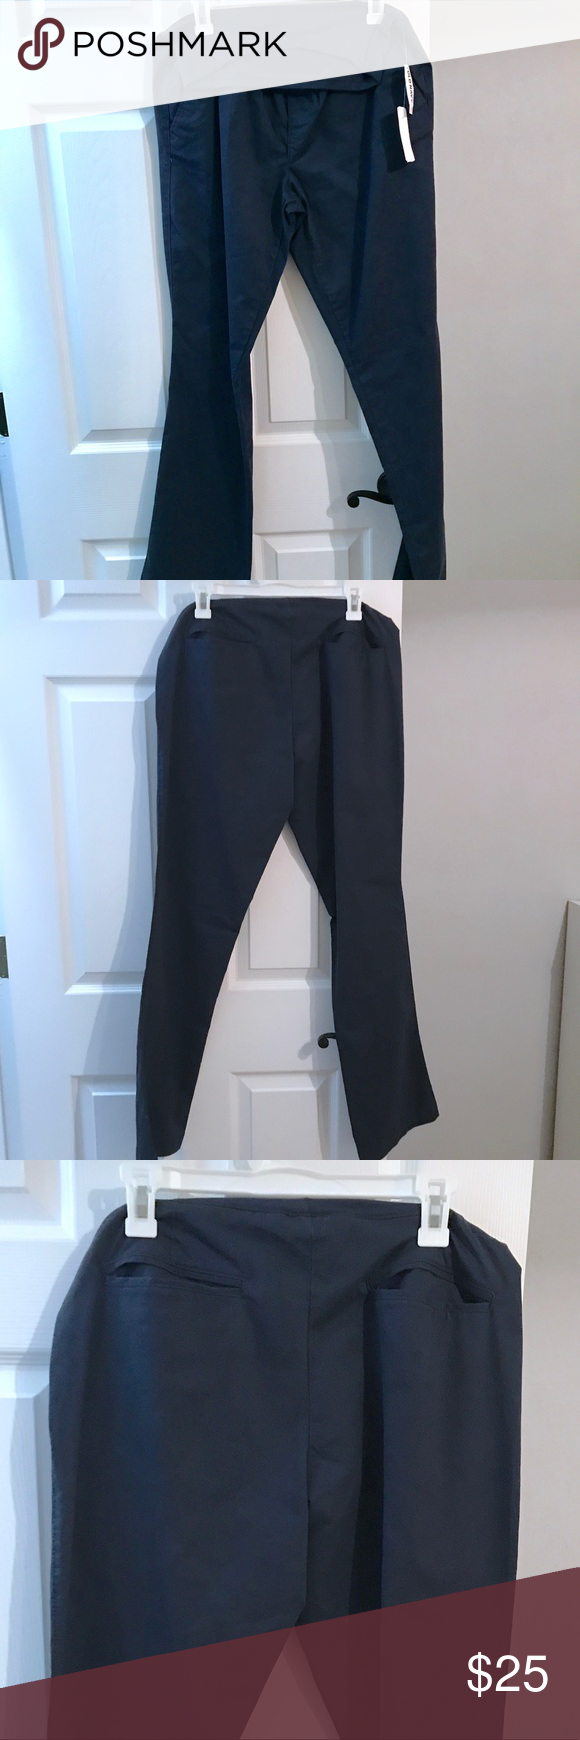 Nwt old navy talllong navy maternity dress pants nwt maternity nwt old navy talllong navy maternity dress pants nwt ombrellifo Images